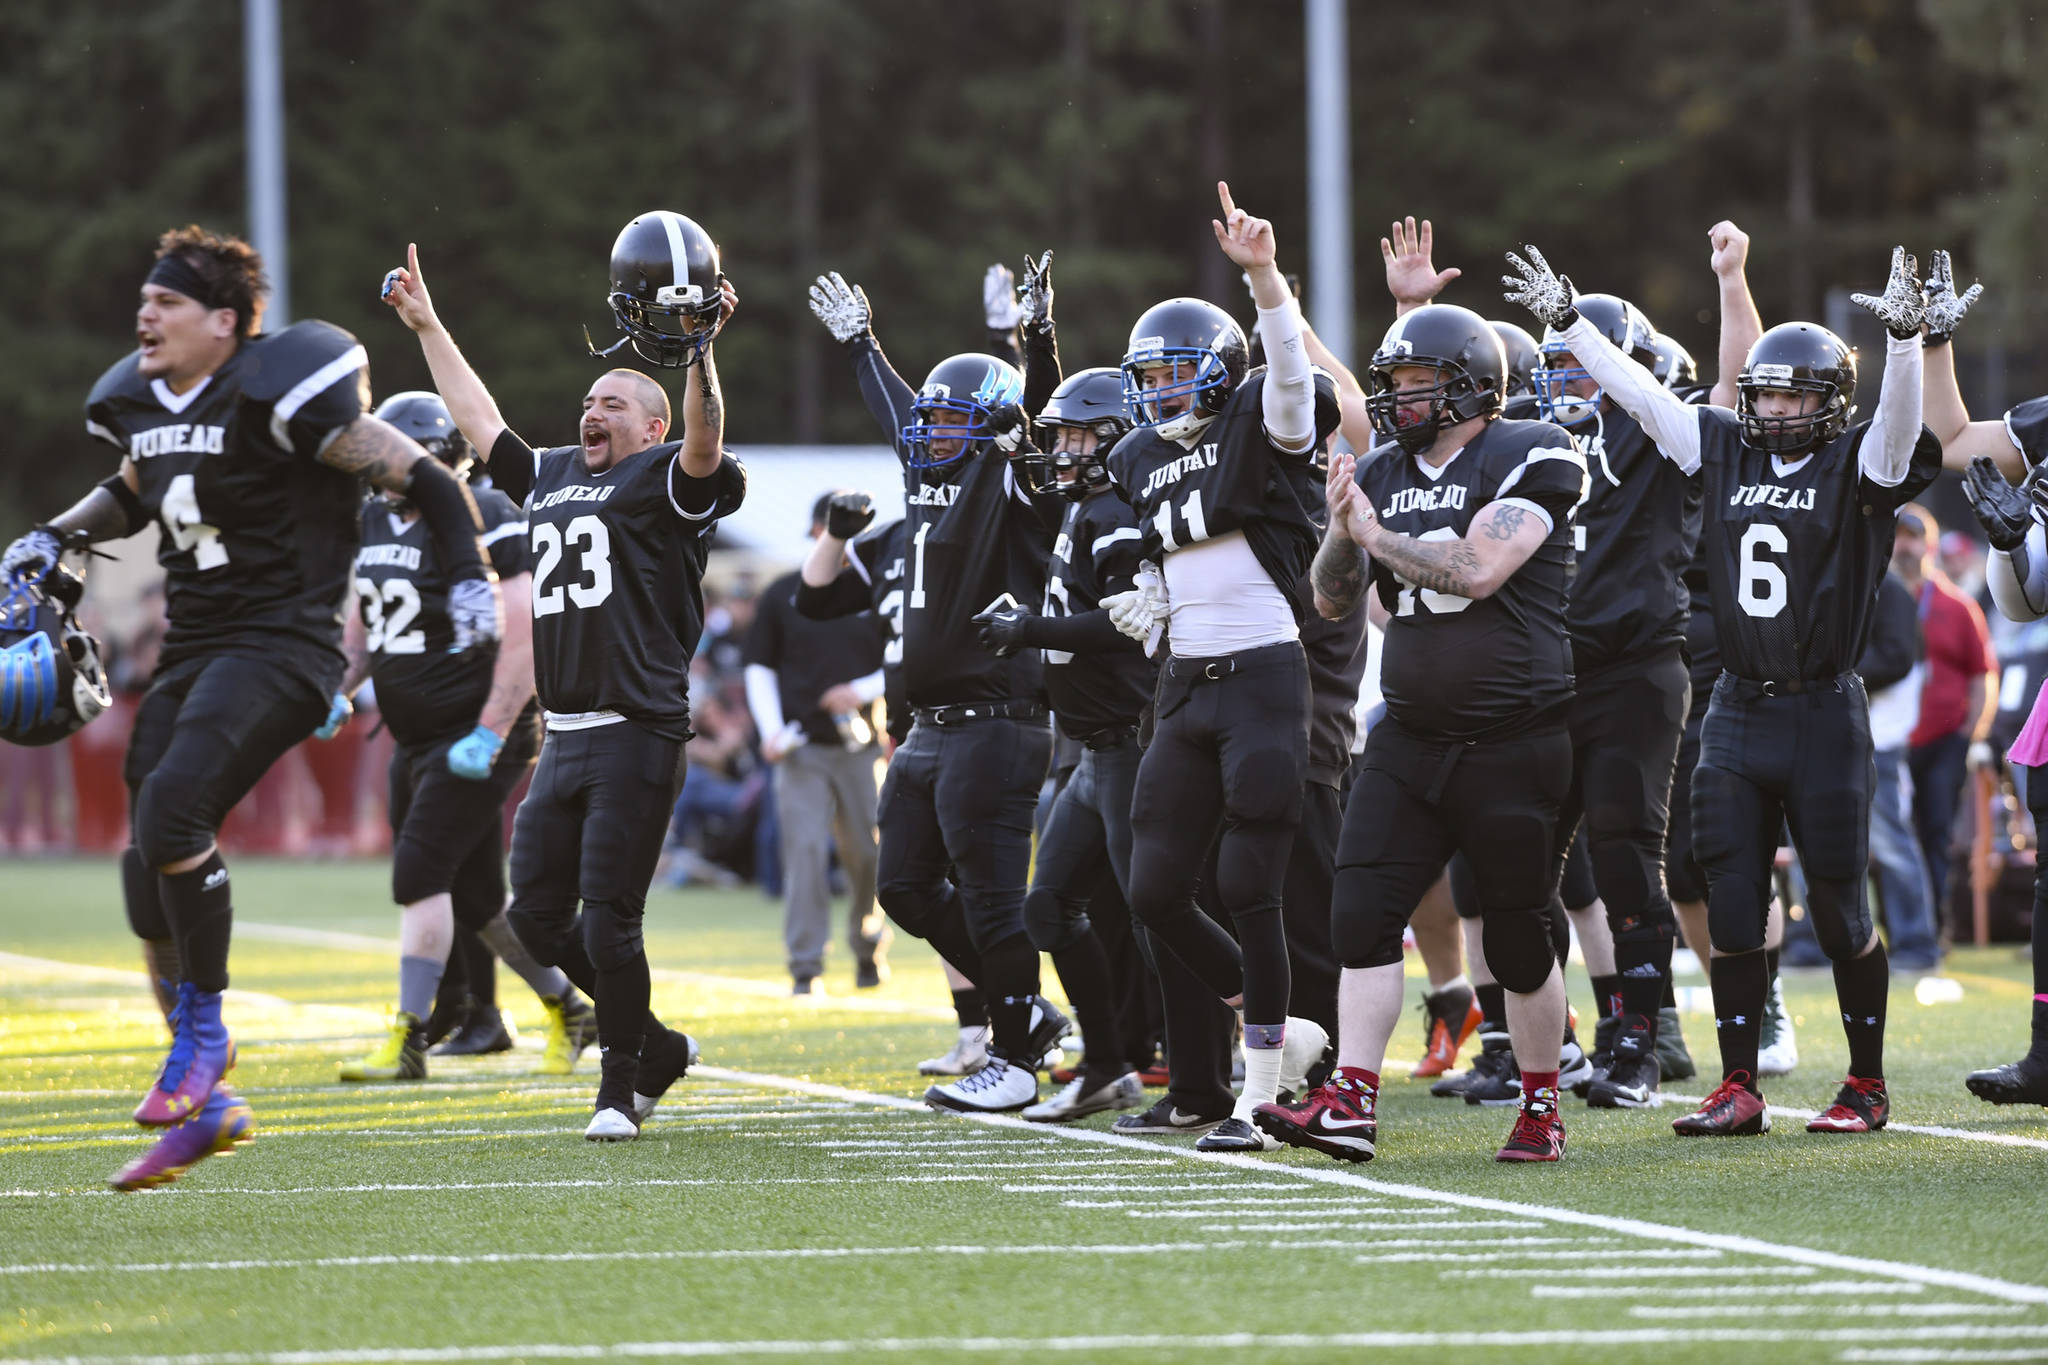 Legends players celebrate their first touchdown at the Juneau Alumni Football Game with football players, dance team members and cheerleaders from Juneau-Douglas and Thunder Mountain High Schools at Adair-Kennedy Memorial Field on Friday, May 24, 2019. (Michael Penn | Juneau Empire)